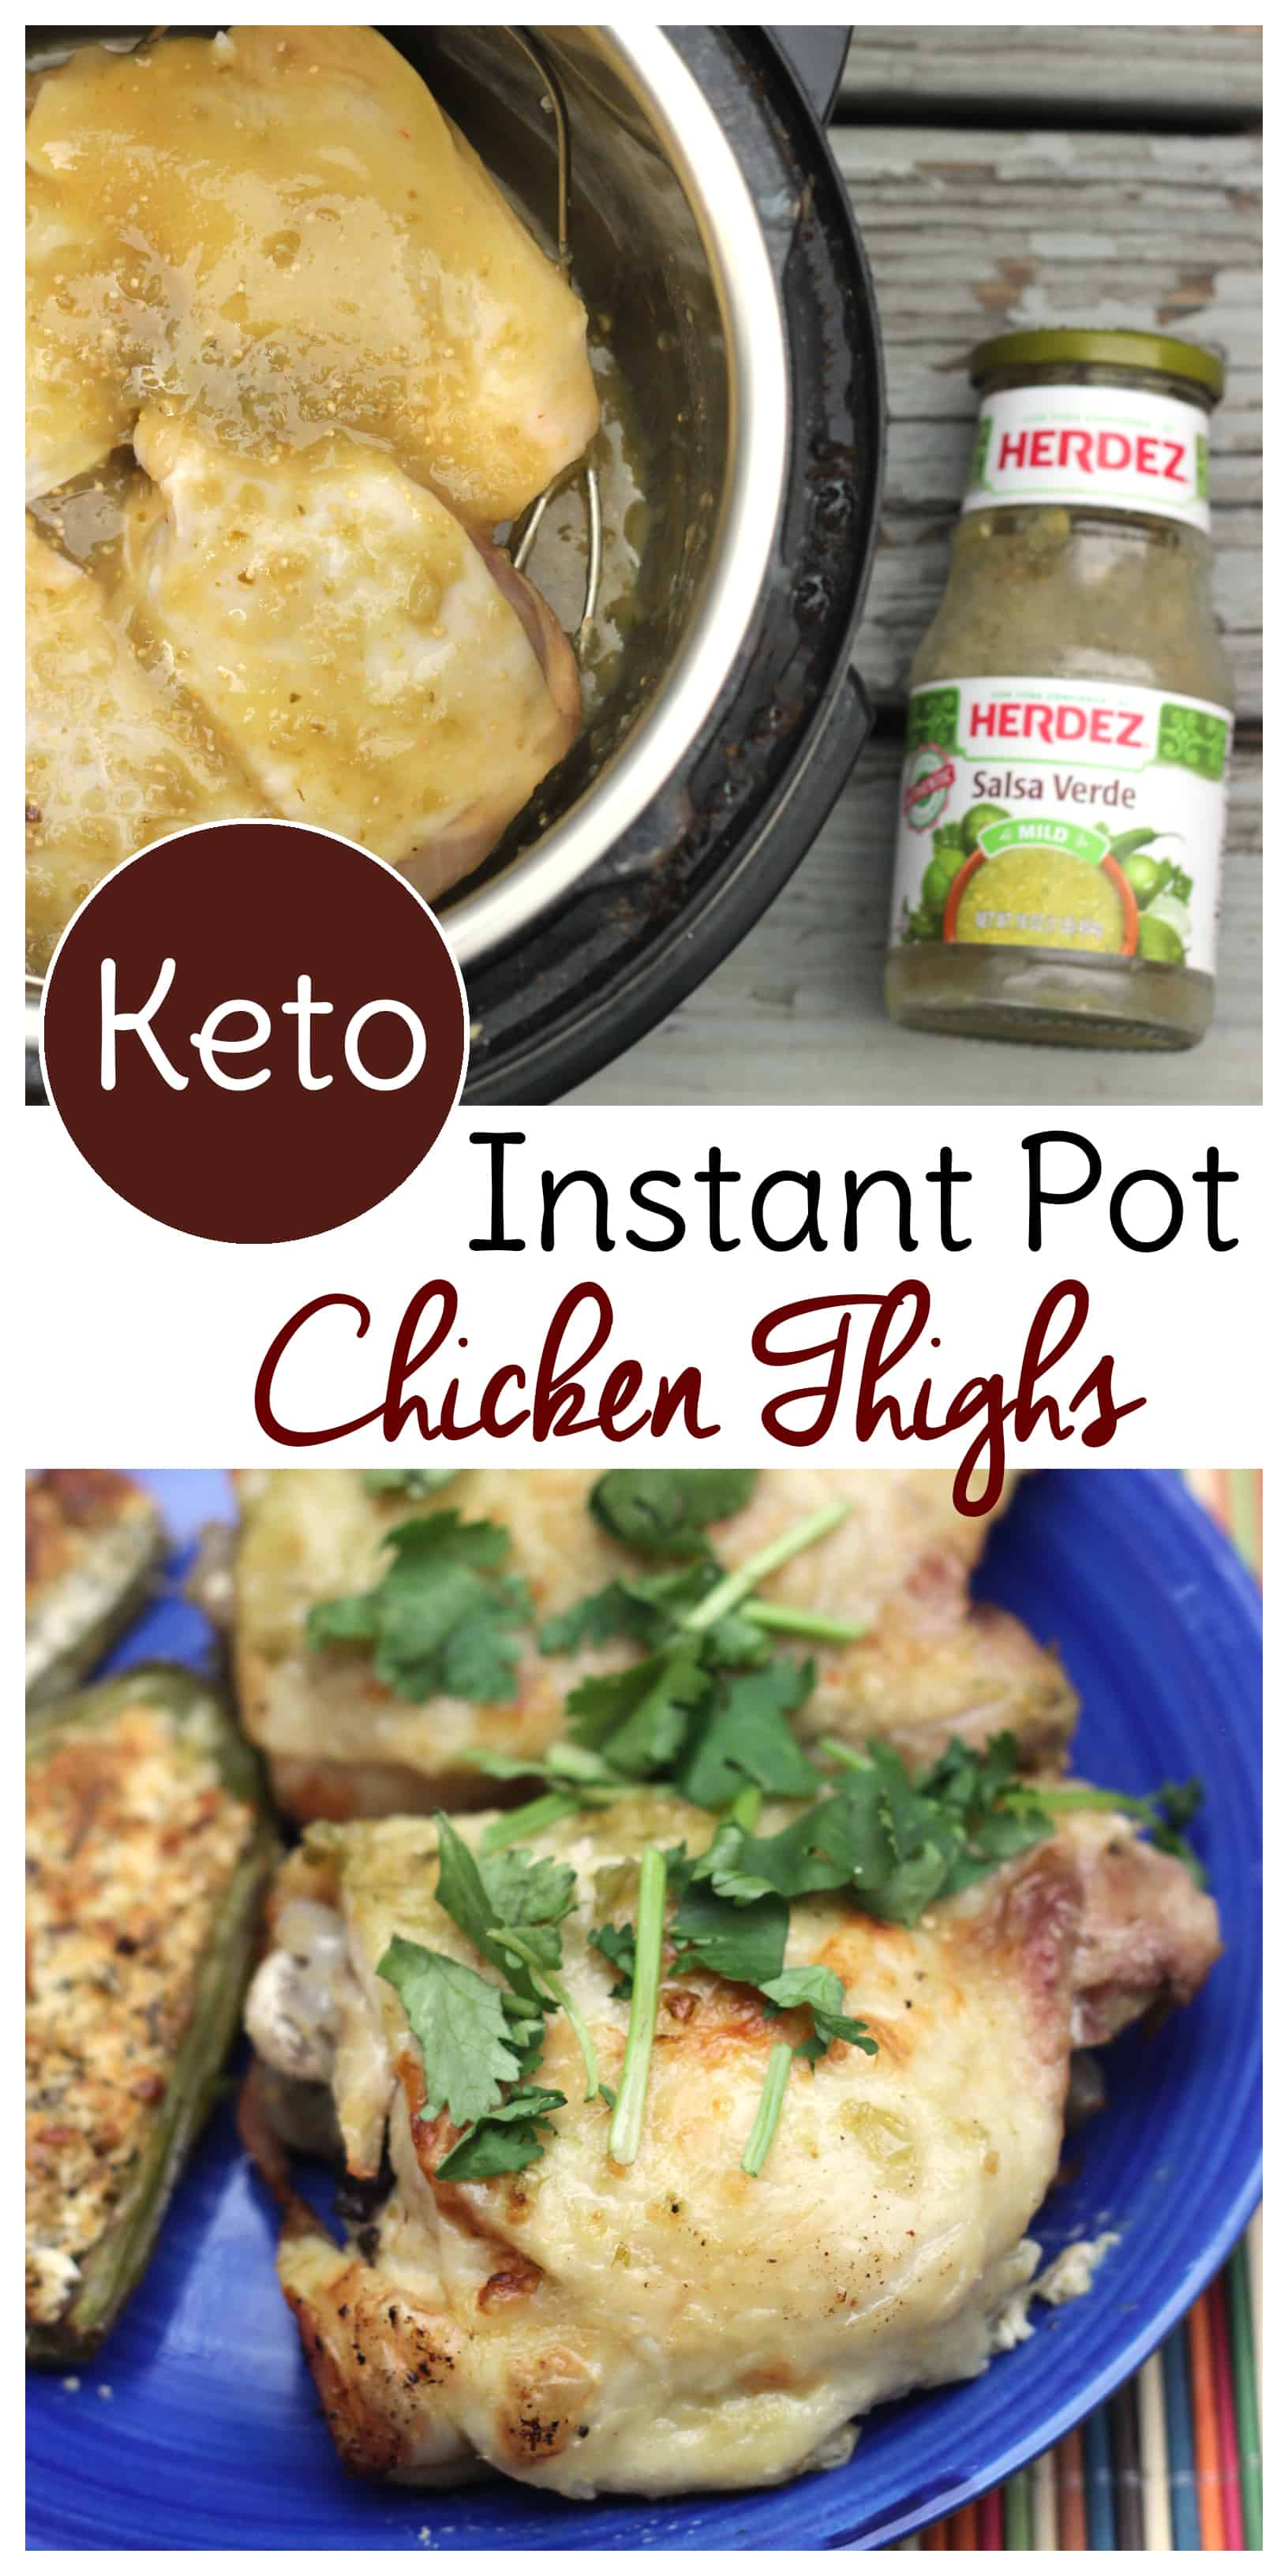 Crisp up these Keto Instant Pot Chicken Thighs in your Air Fryer once they're done. Does it get any easier than a 2-ingredient dish?